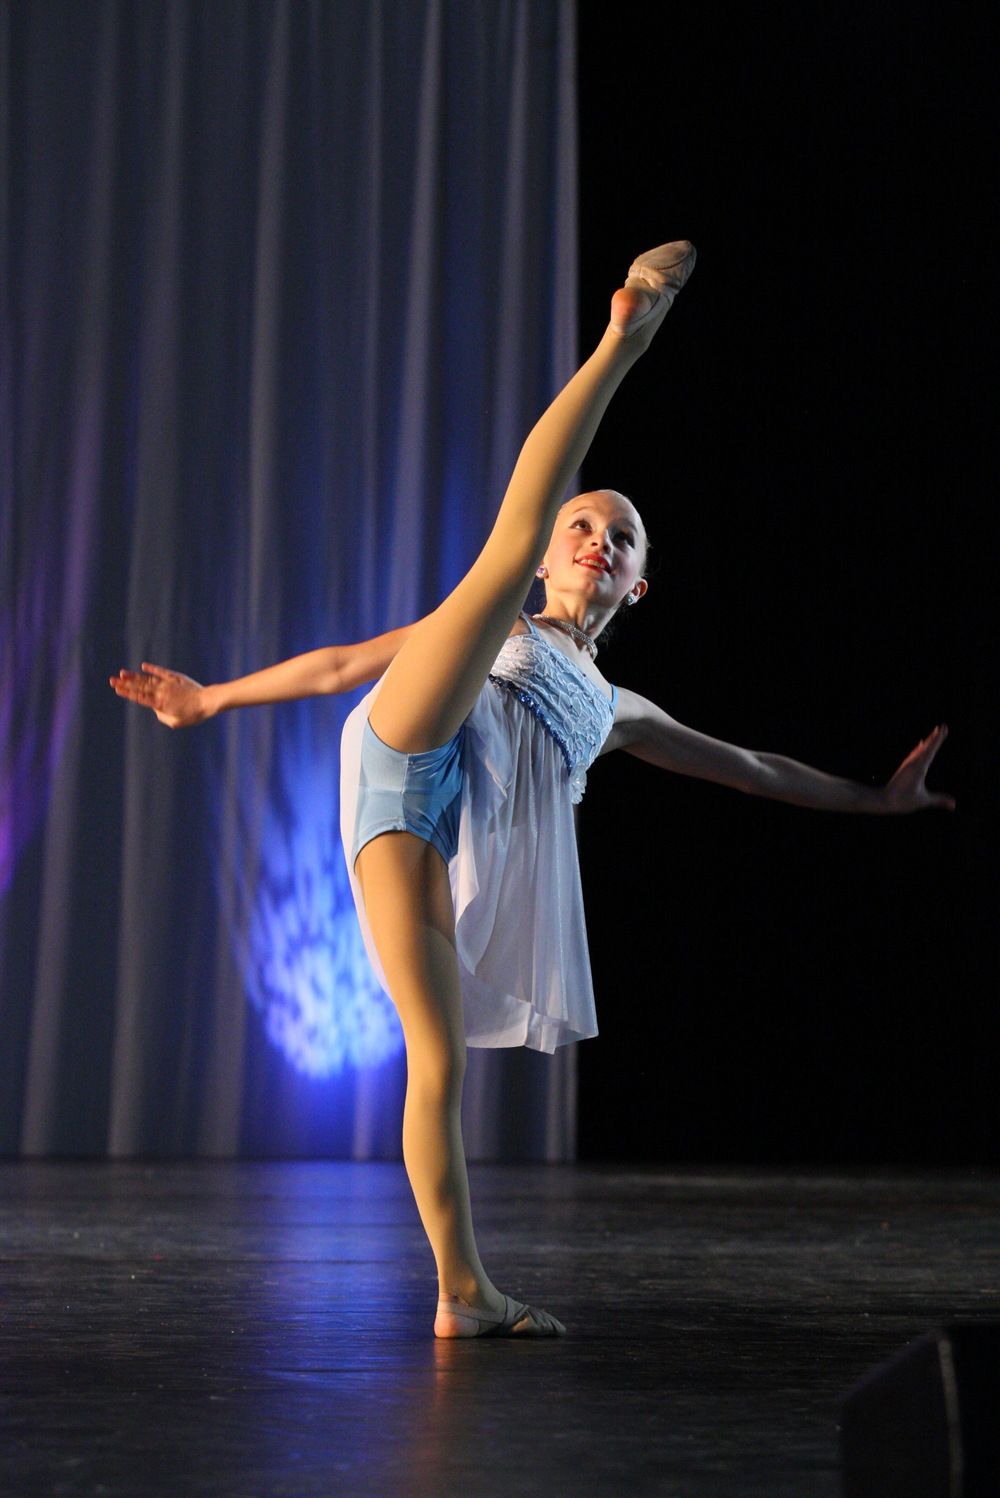 2013 - Marie Thayer from DD's Dance Studio